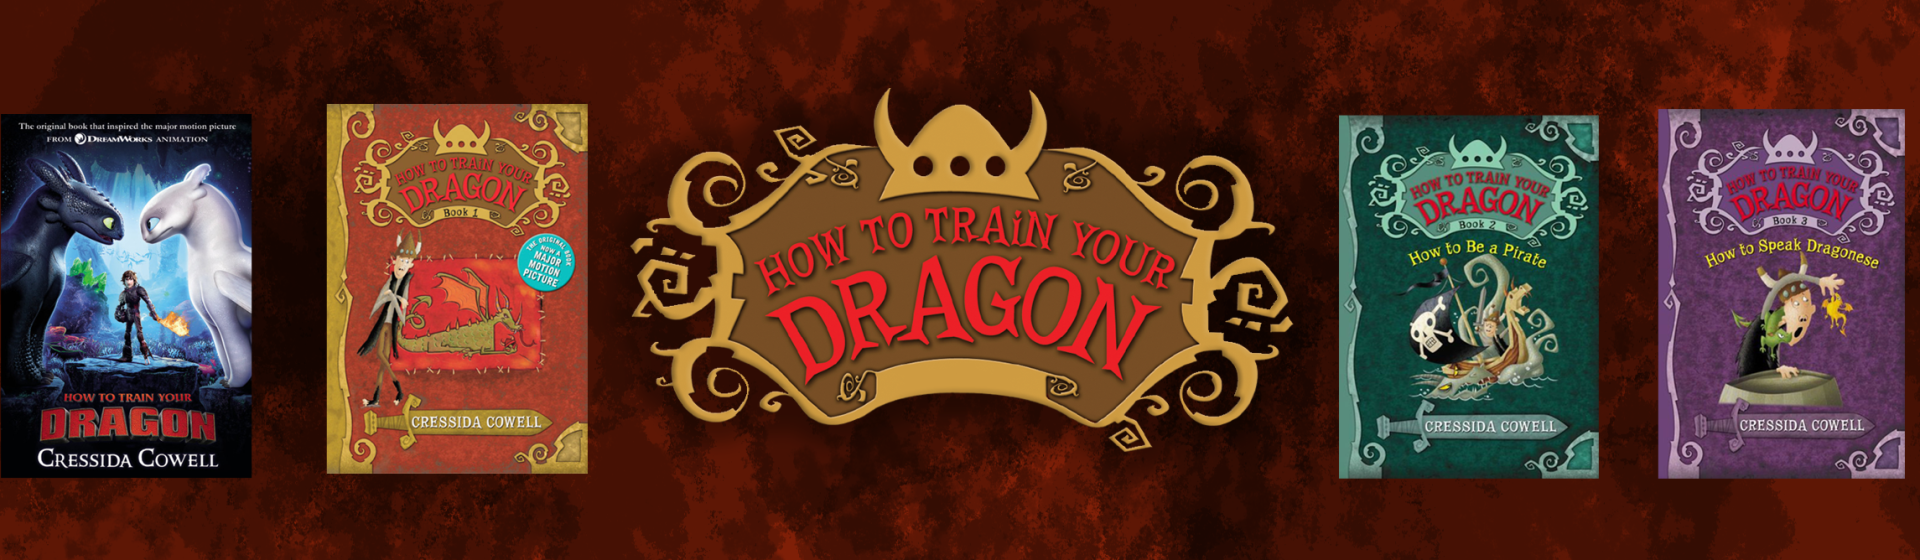 How To Train Your Dragon Series in Order | Cressida Cowell | Little